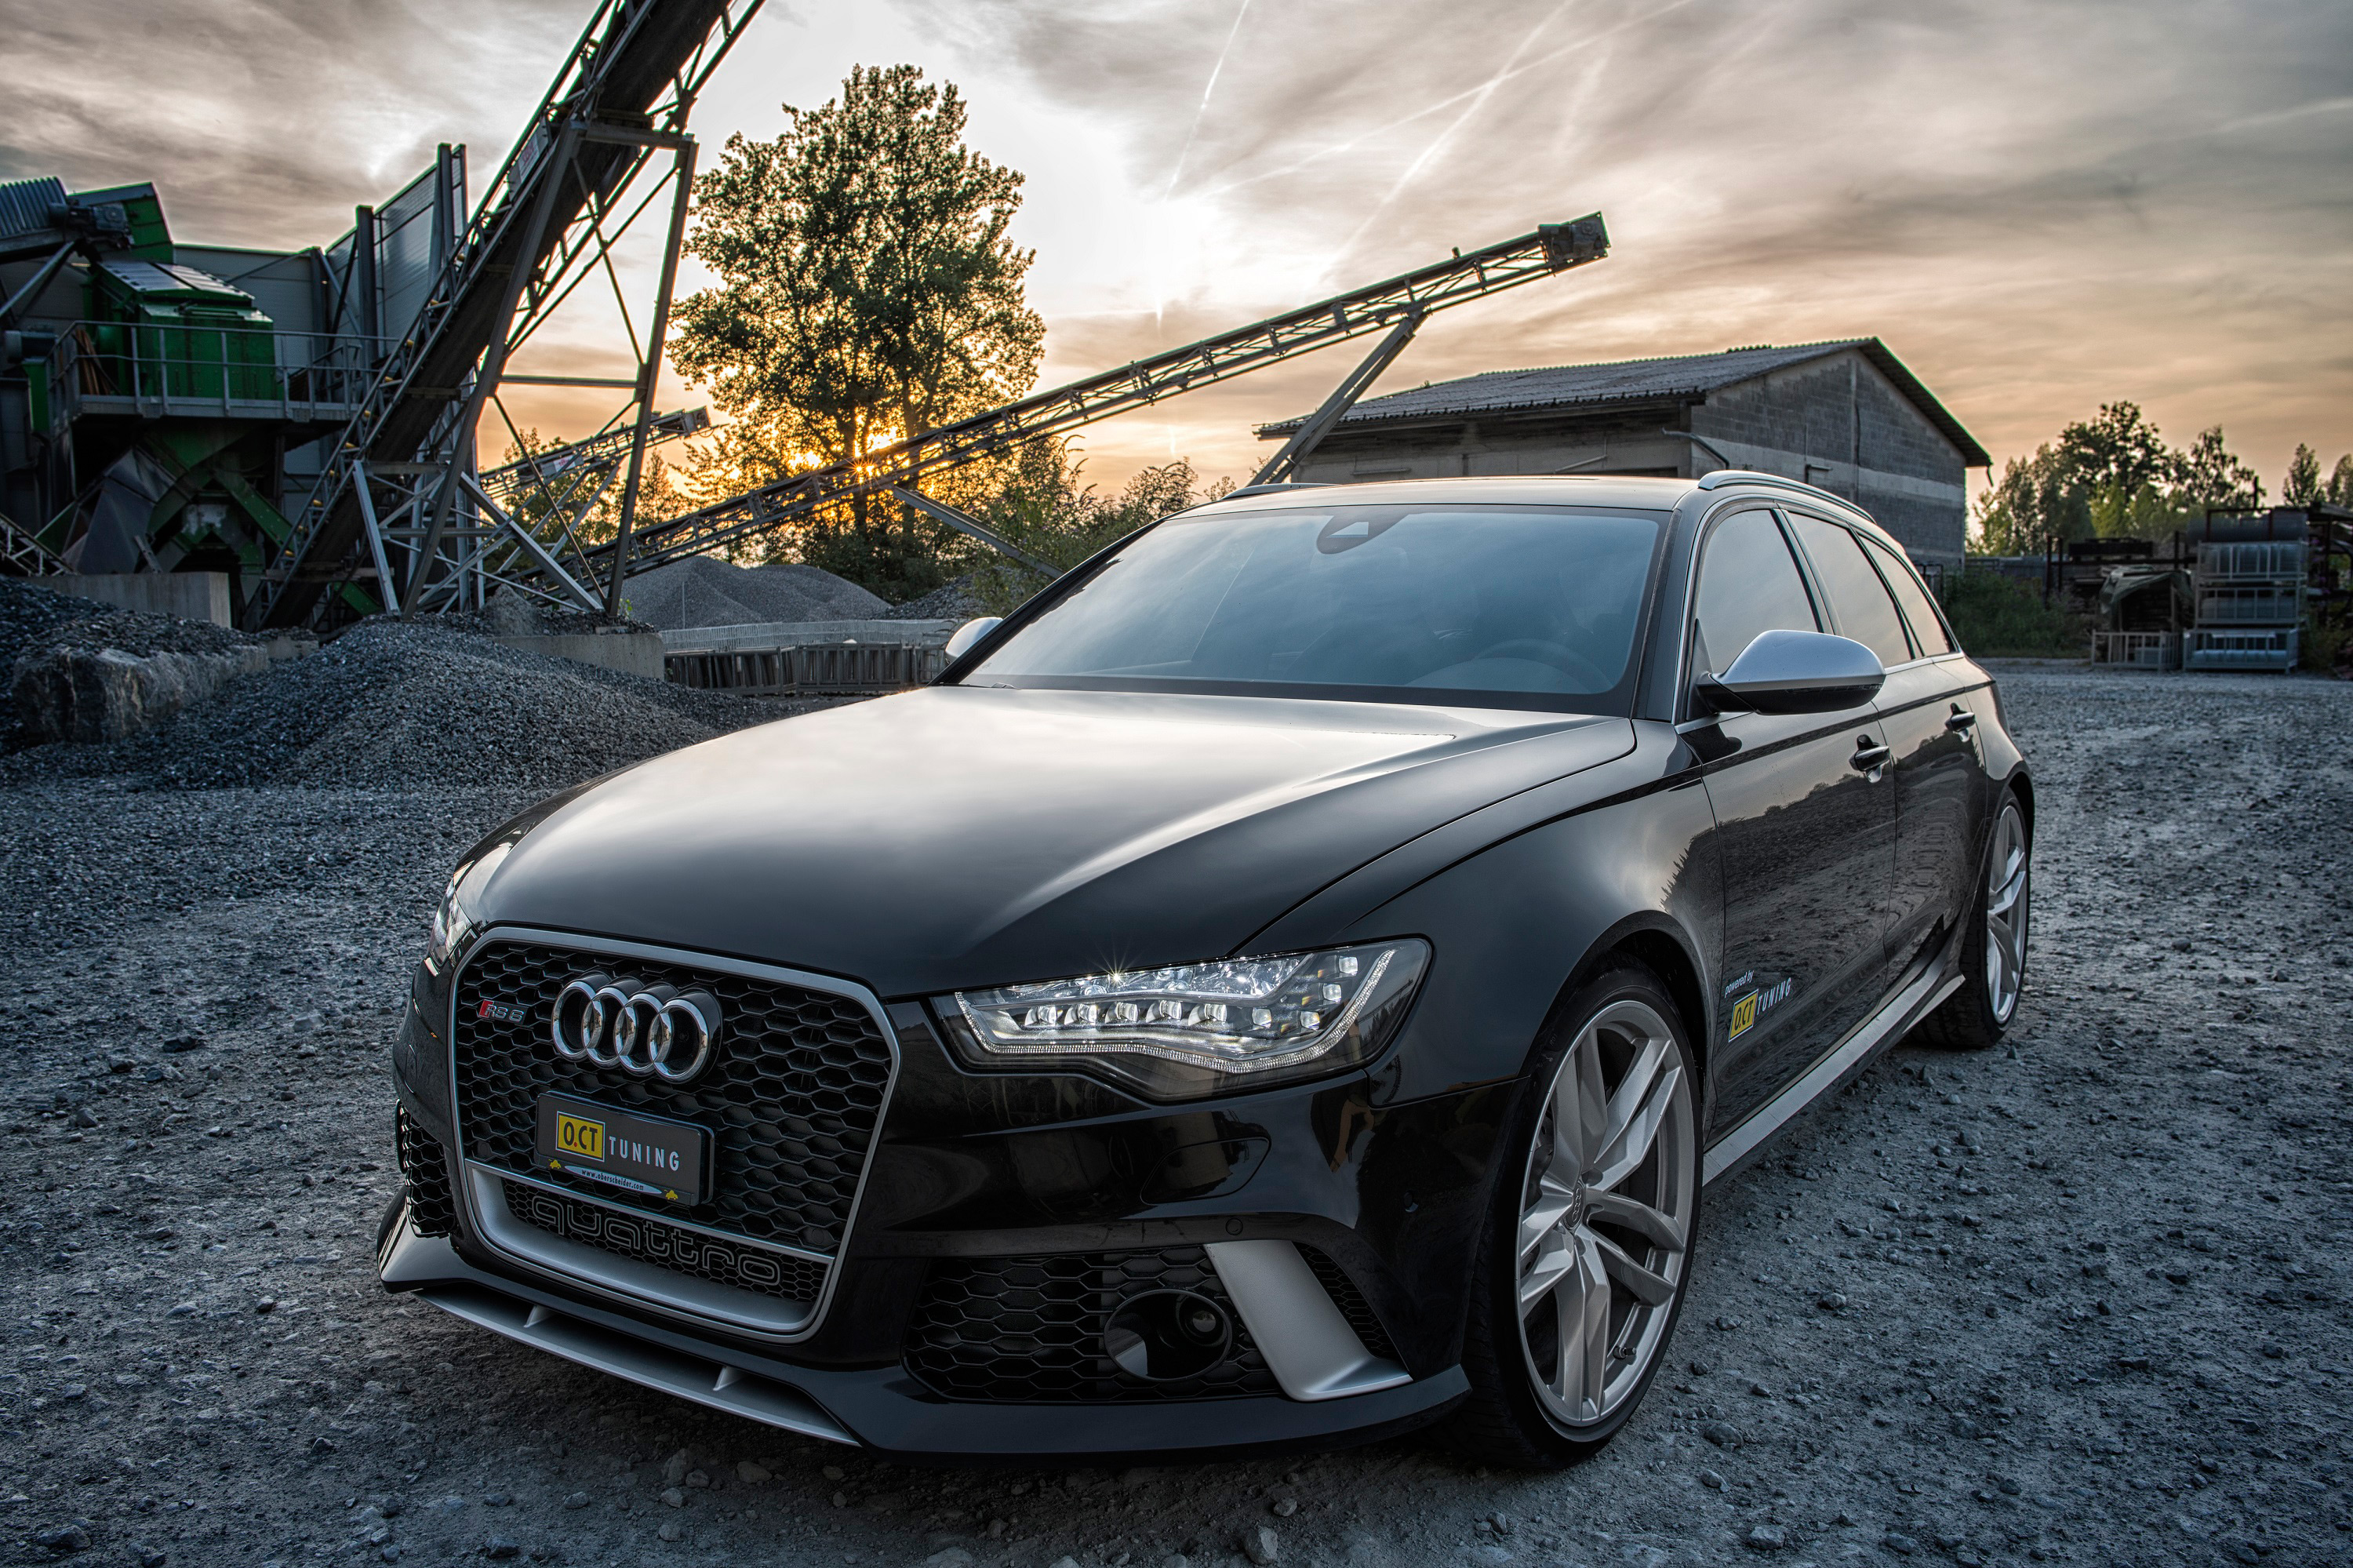 Oct Tuning Audi Rs6 670hp And 880nm